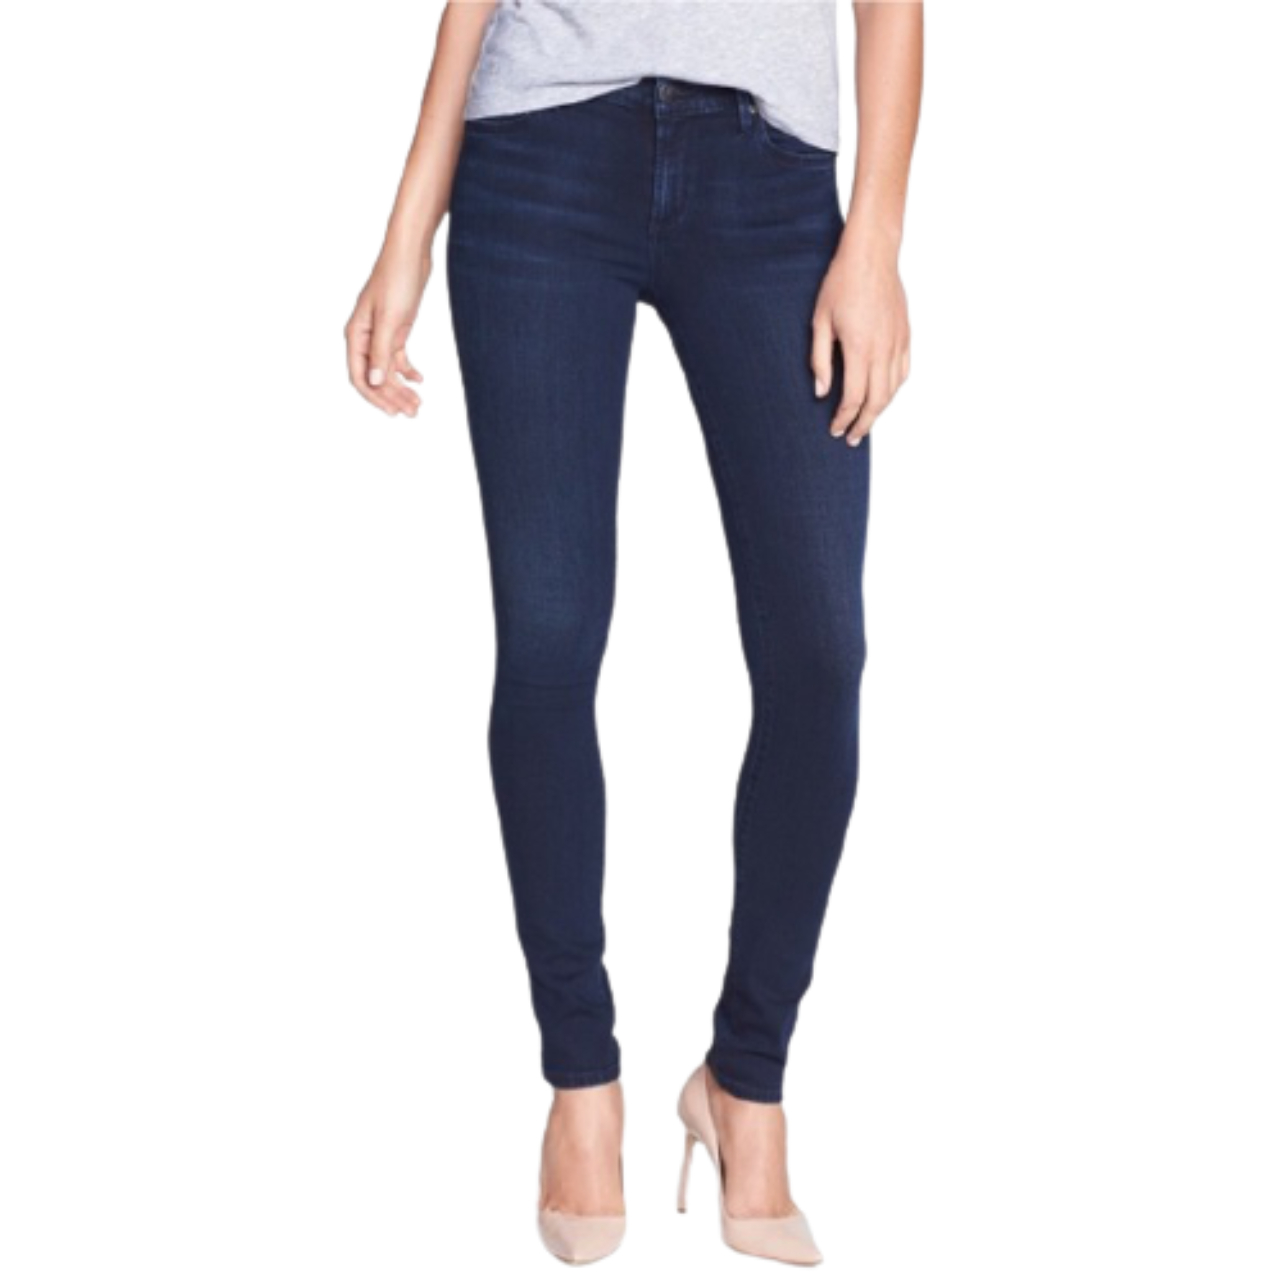 Product Image 1 - Agolde Collete Jeans, Mid-Rise Skinny,